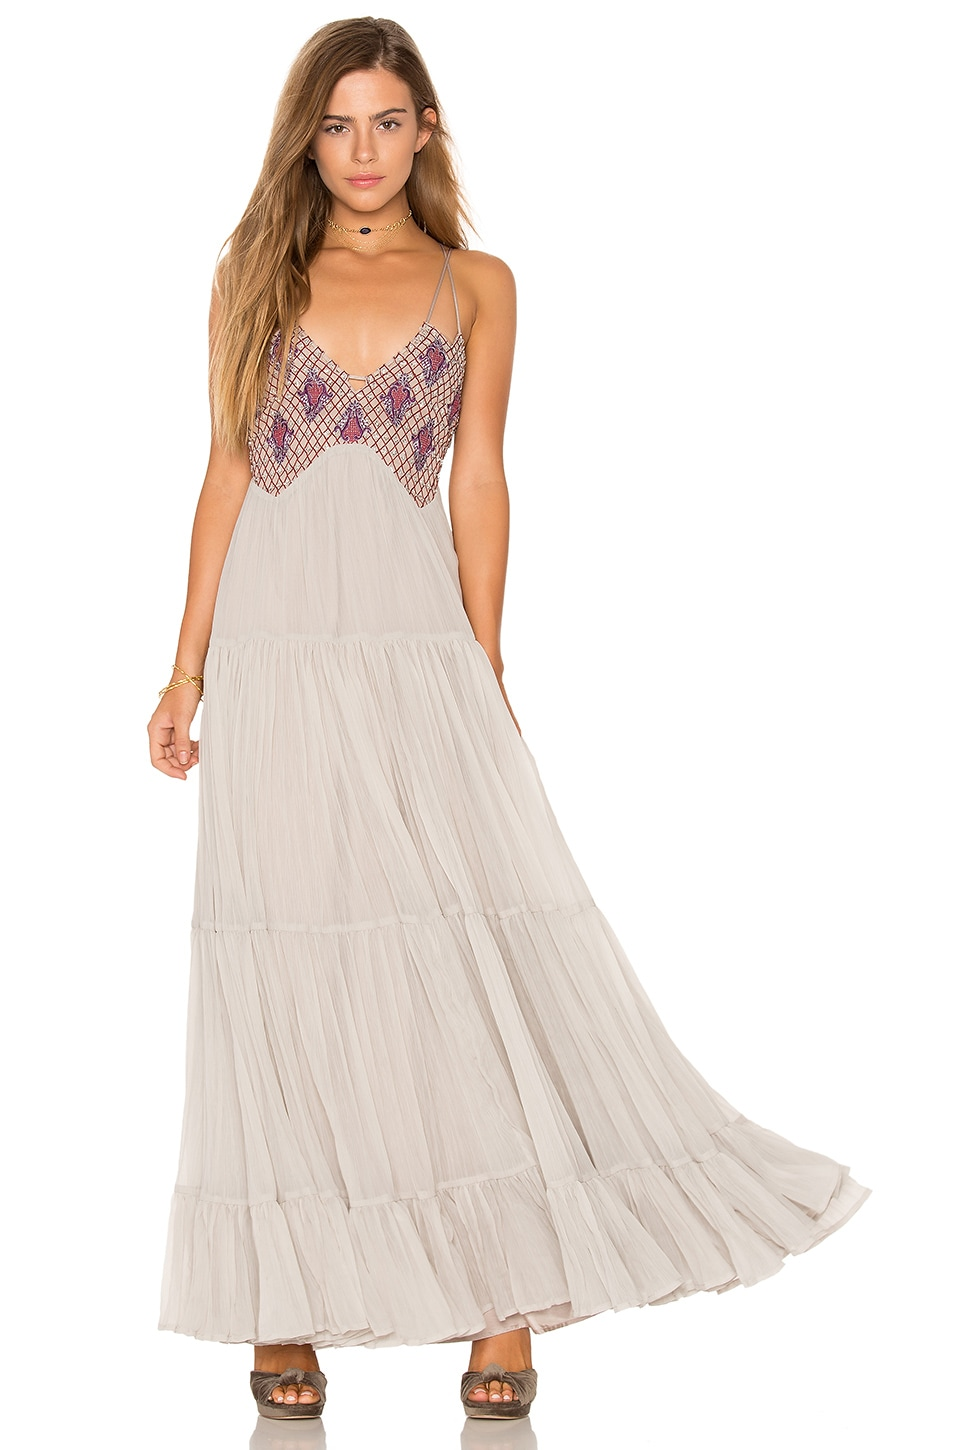 Lost in a Dream Maxi Dress by Free People